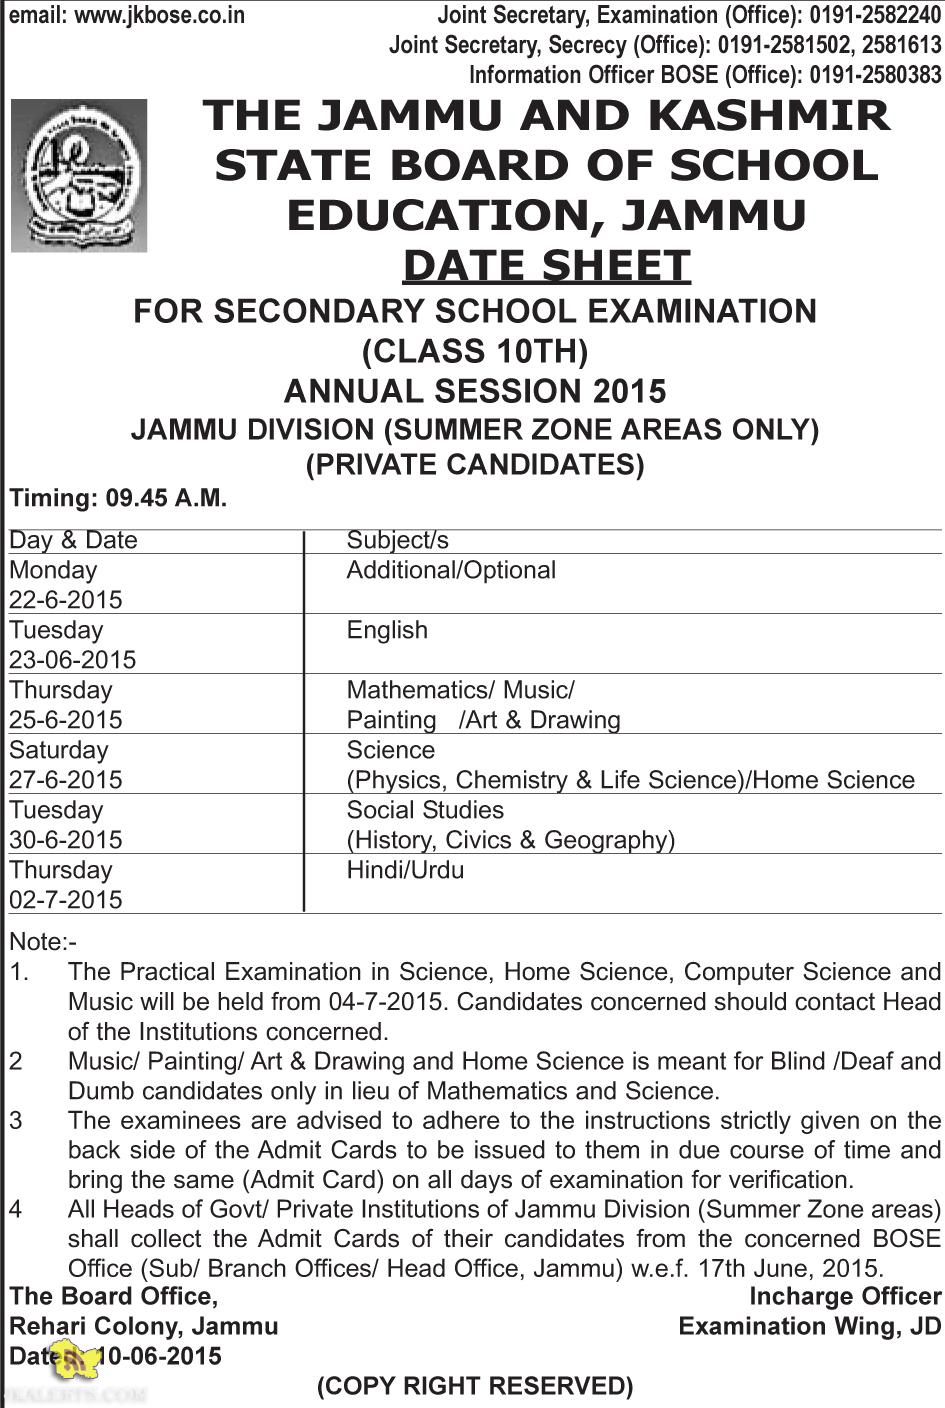 CLASS 10TH DATESHEET JAMMU DIVISION (PRIVATE CANDIDATES)